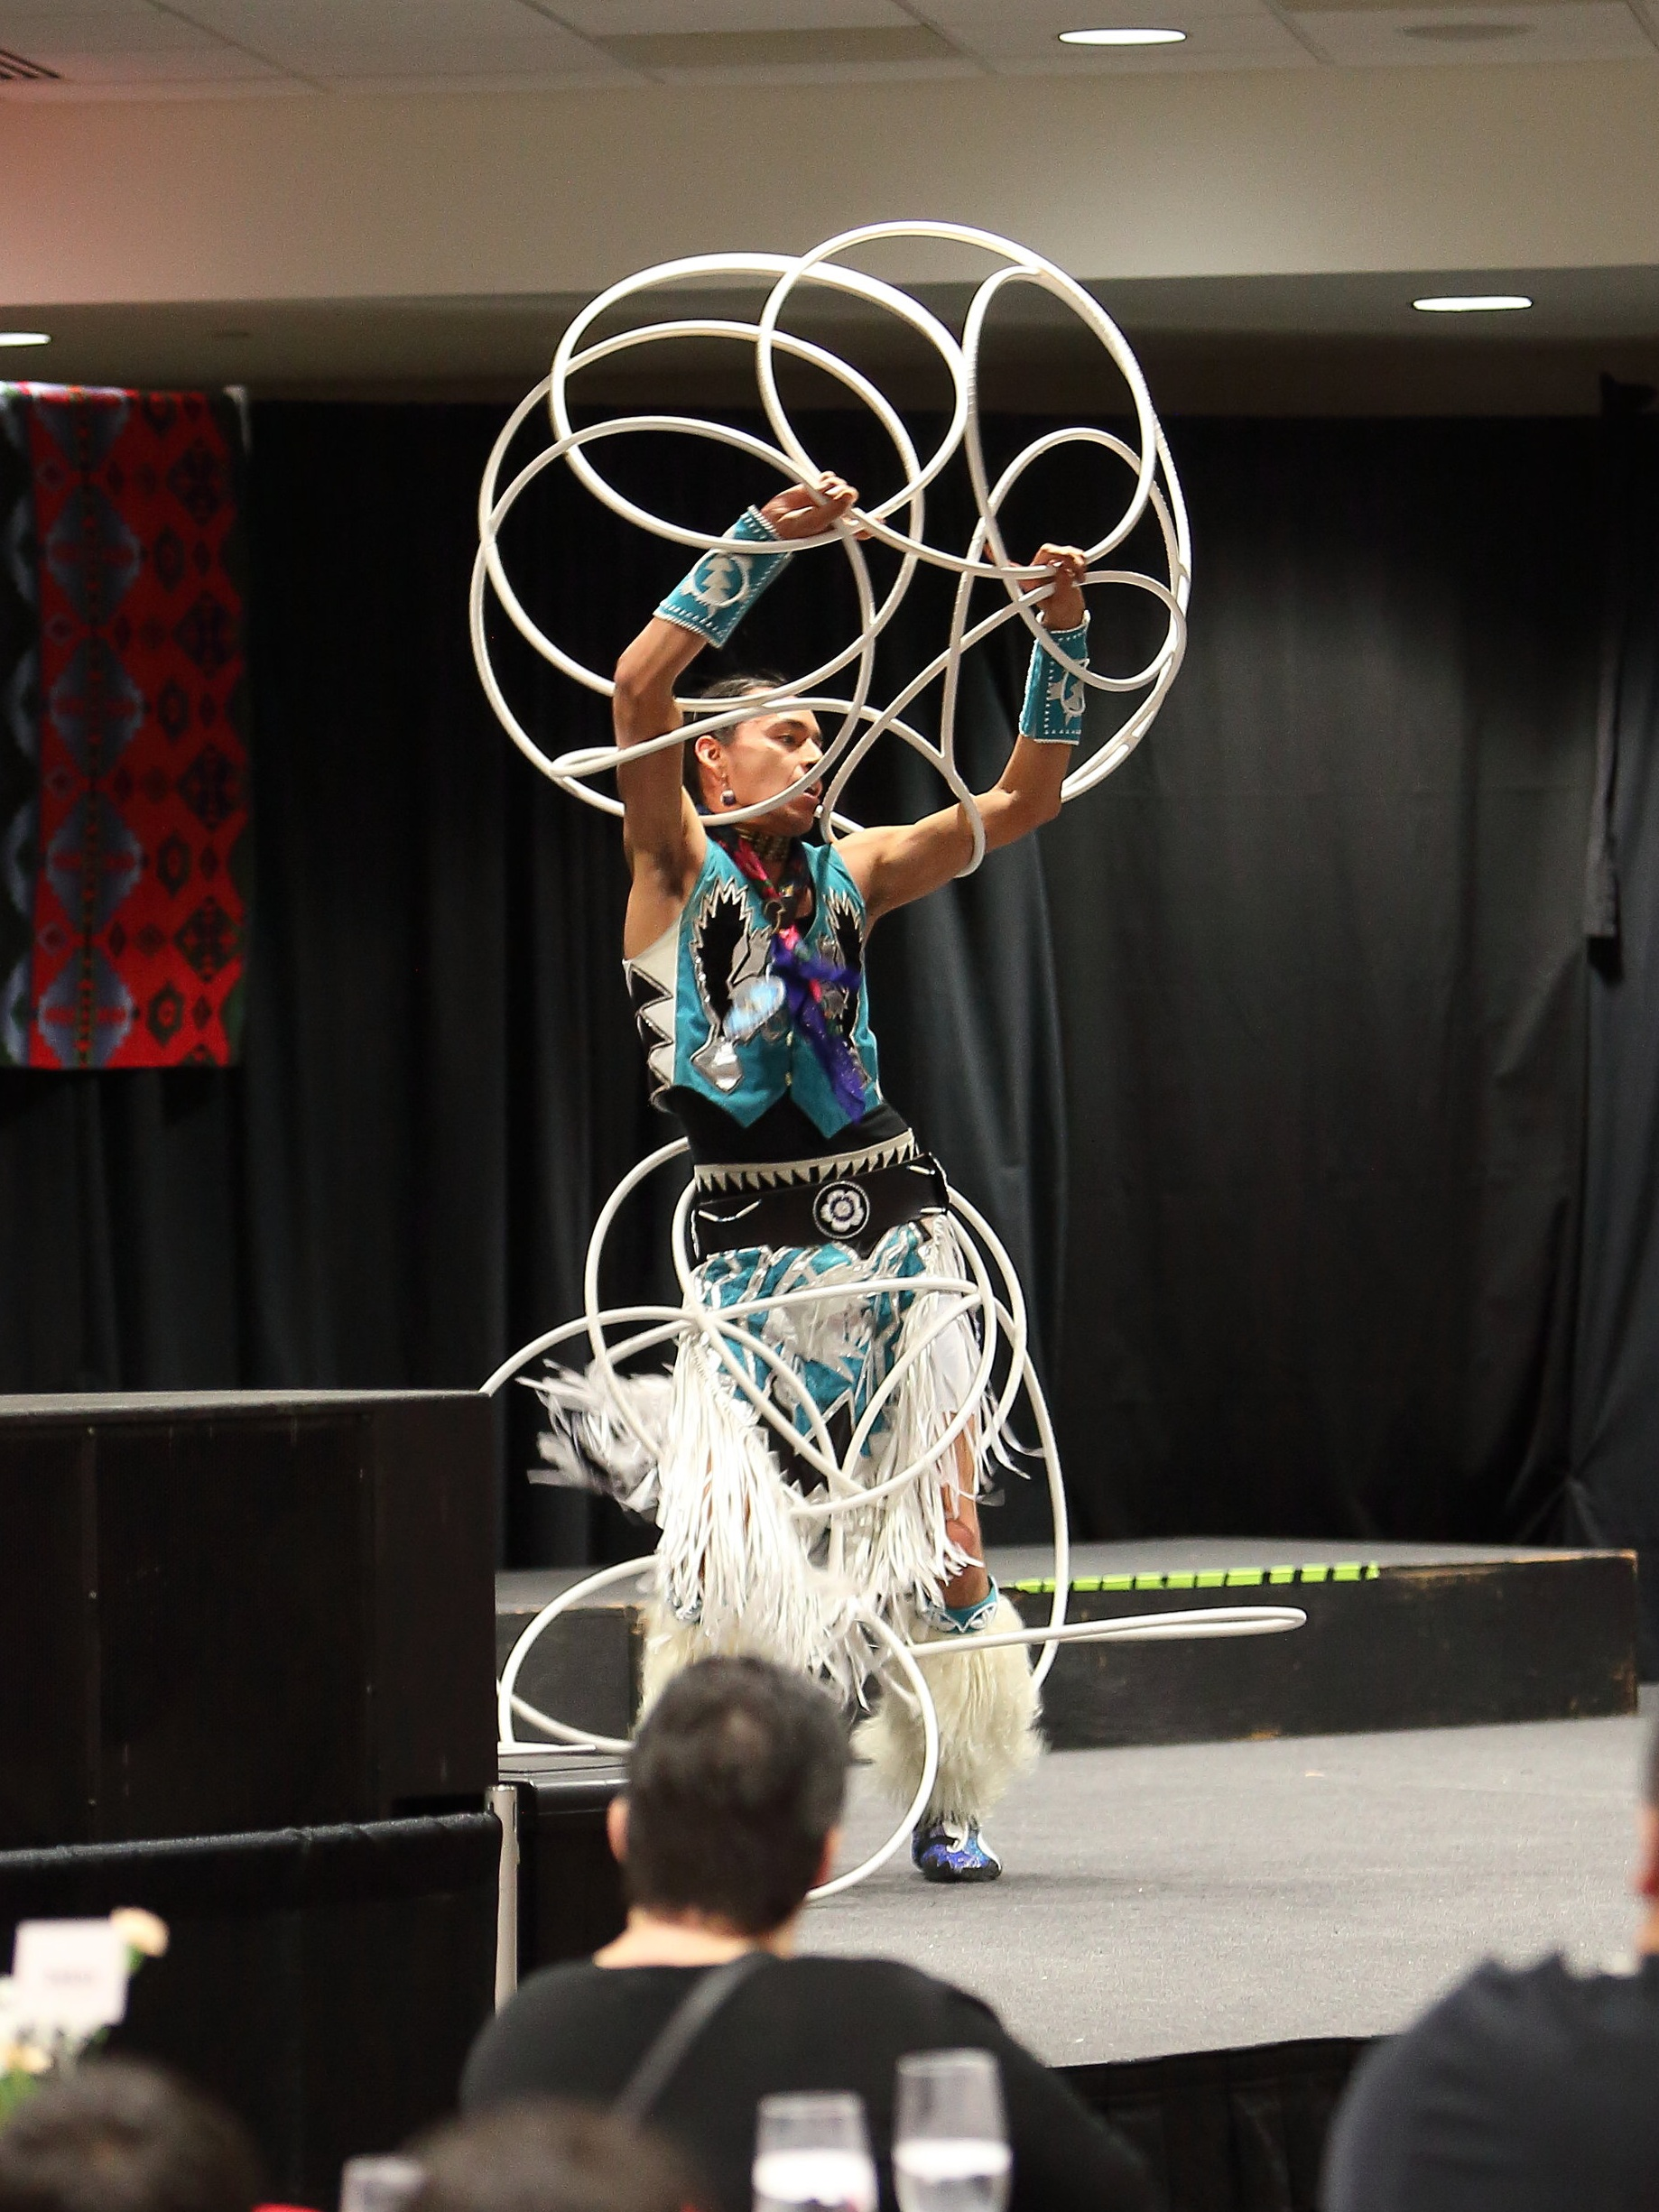 Hoop dancer performing during Miscobinayshii's honoring. Photo by Falls Portrait Art Studio.